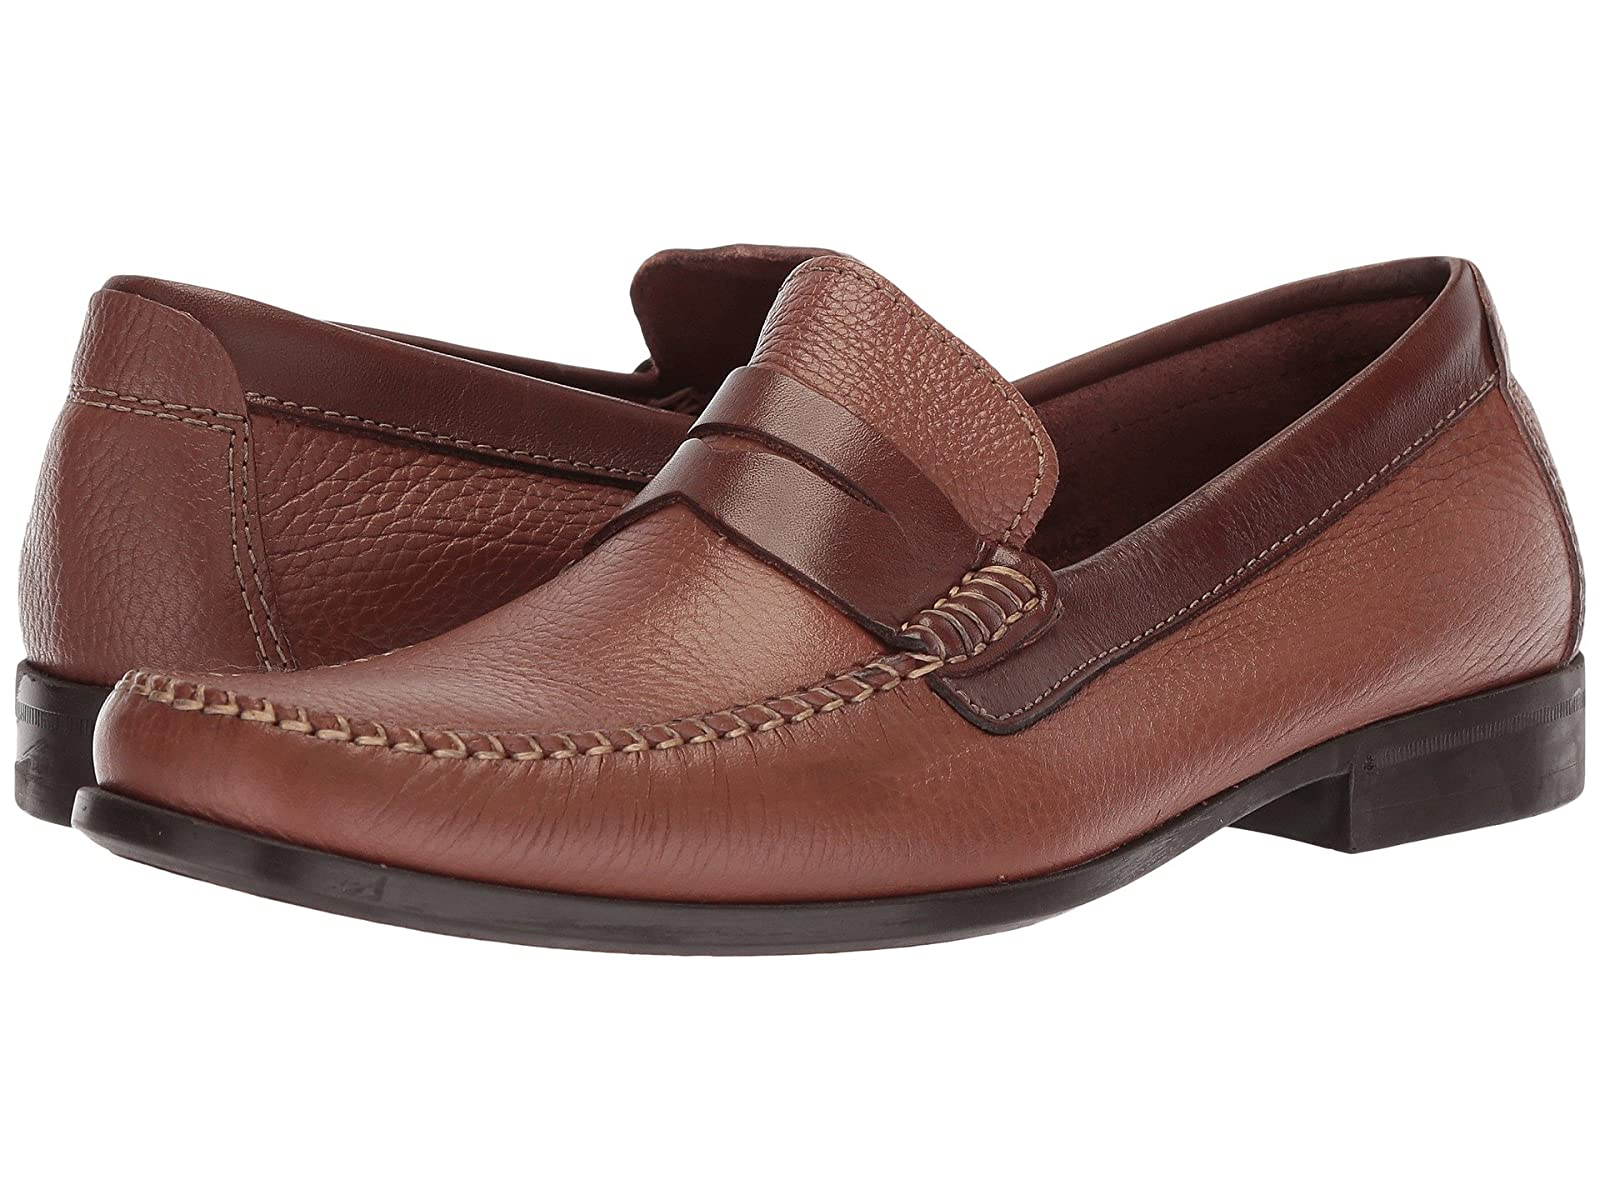 Florsheim Felix 2 PennyCheap and distinctive eye-catching shoes